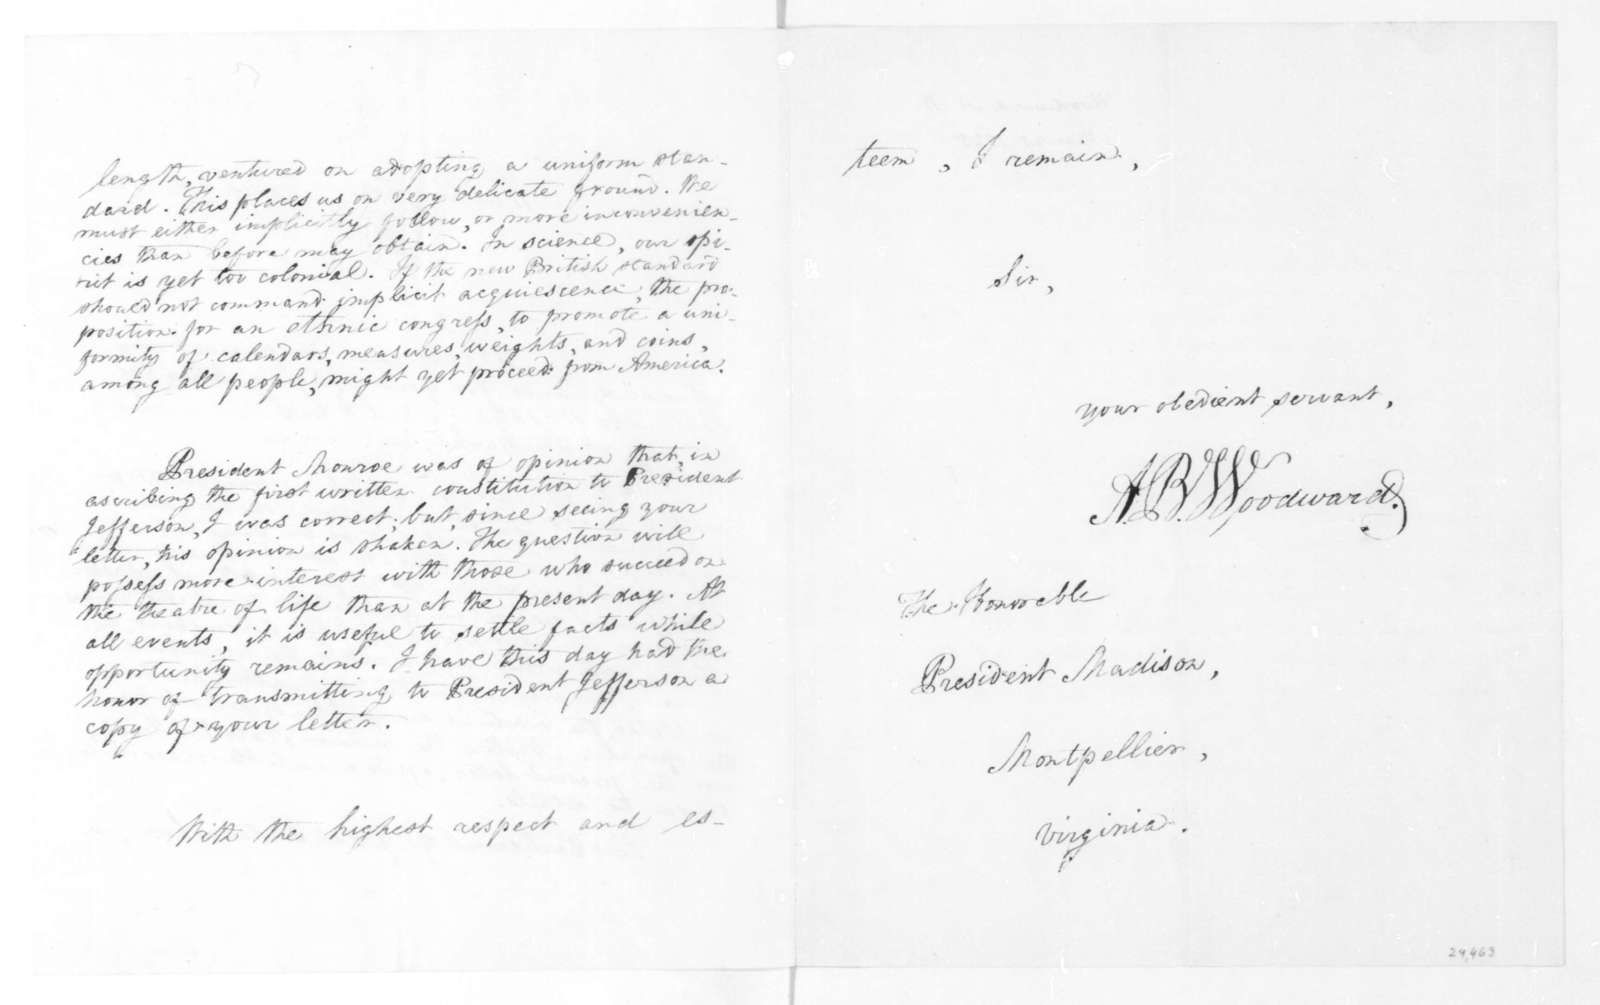 A. B. Woodward to James Madison, March 25, 1825.